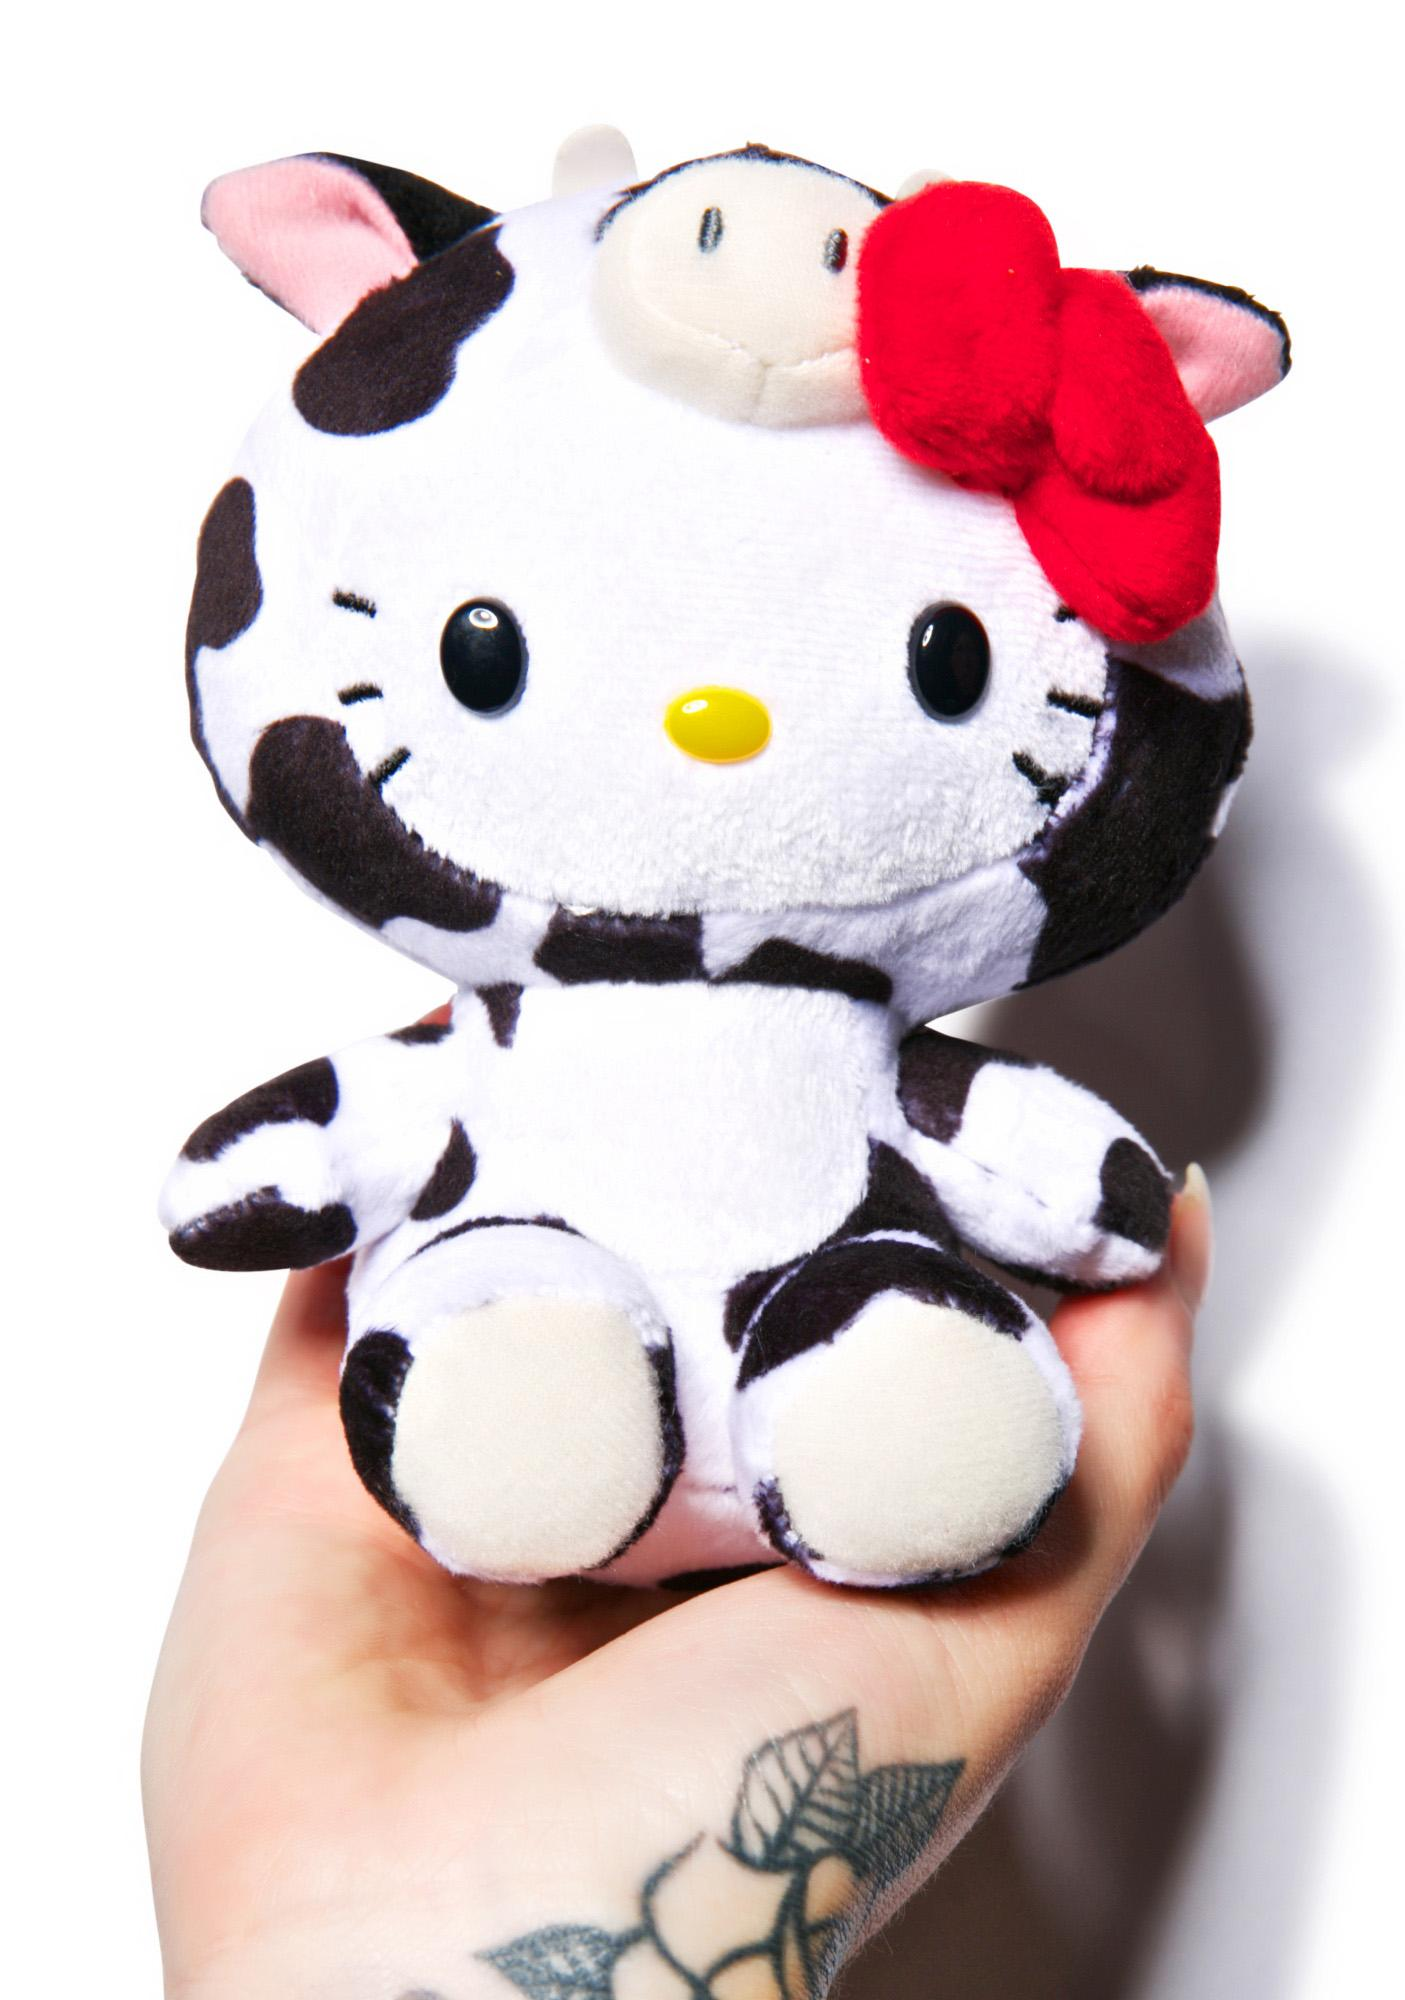 Sanrio Farm Friends Hello Kitty Cow Plush